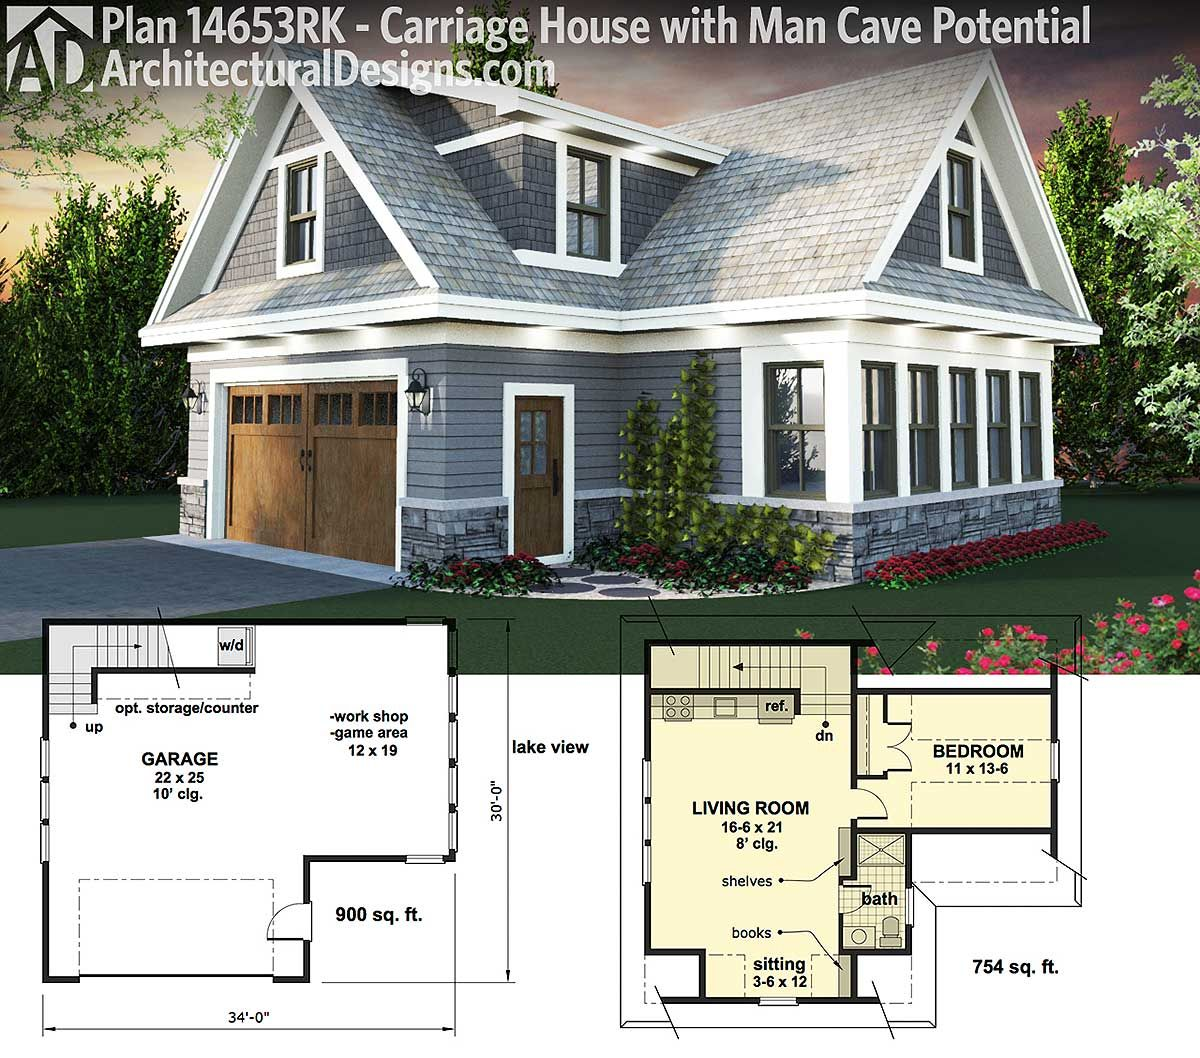 Plan 14653rk carriage house plan with man cave potential for Custom house plans cost